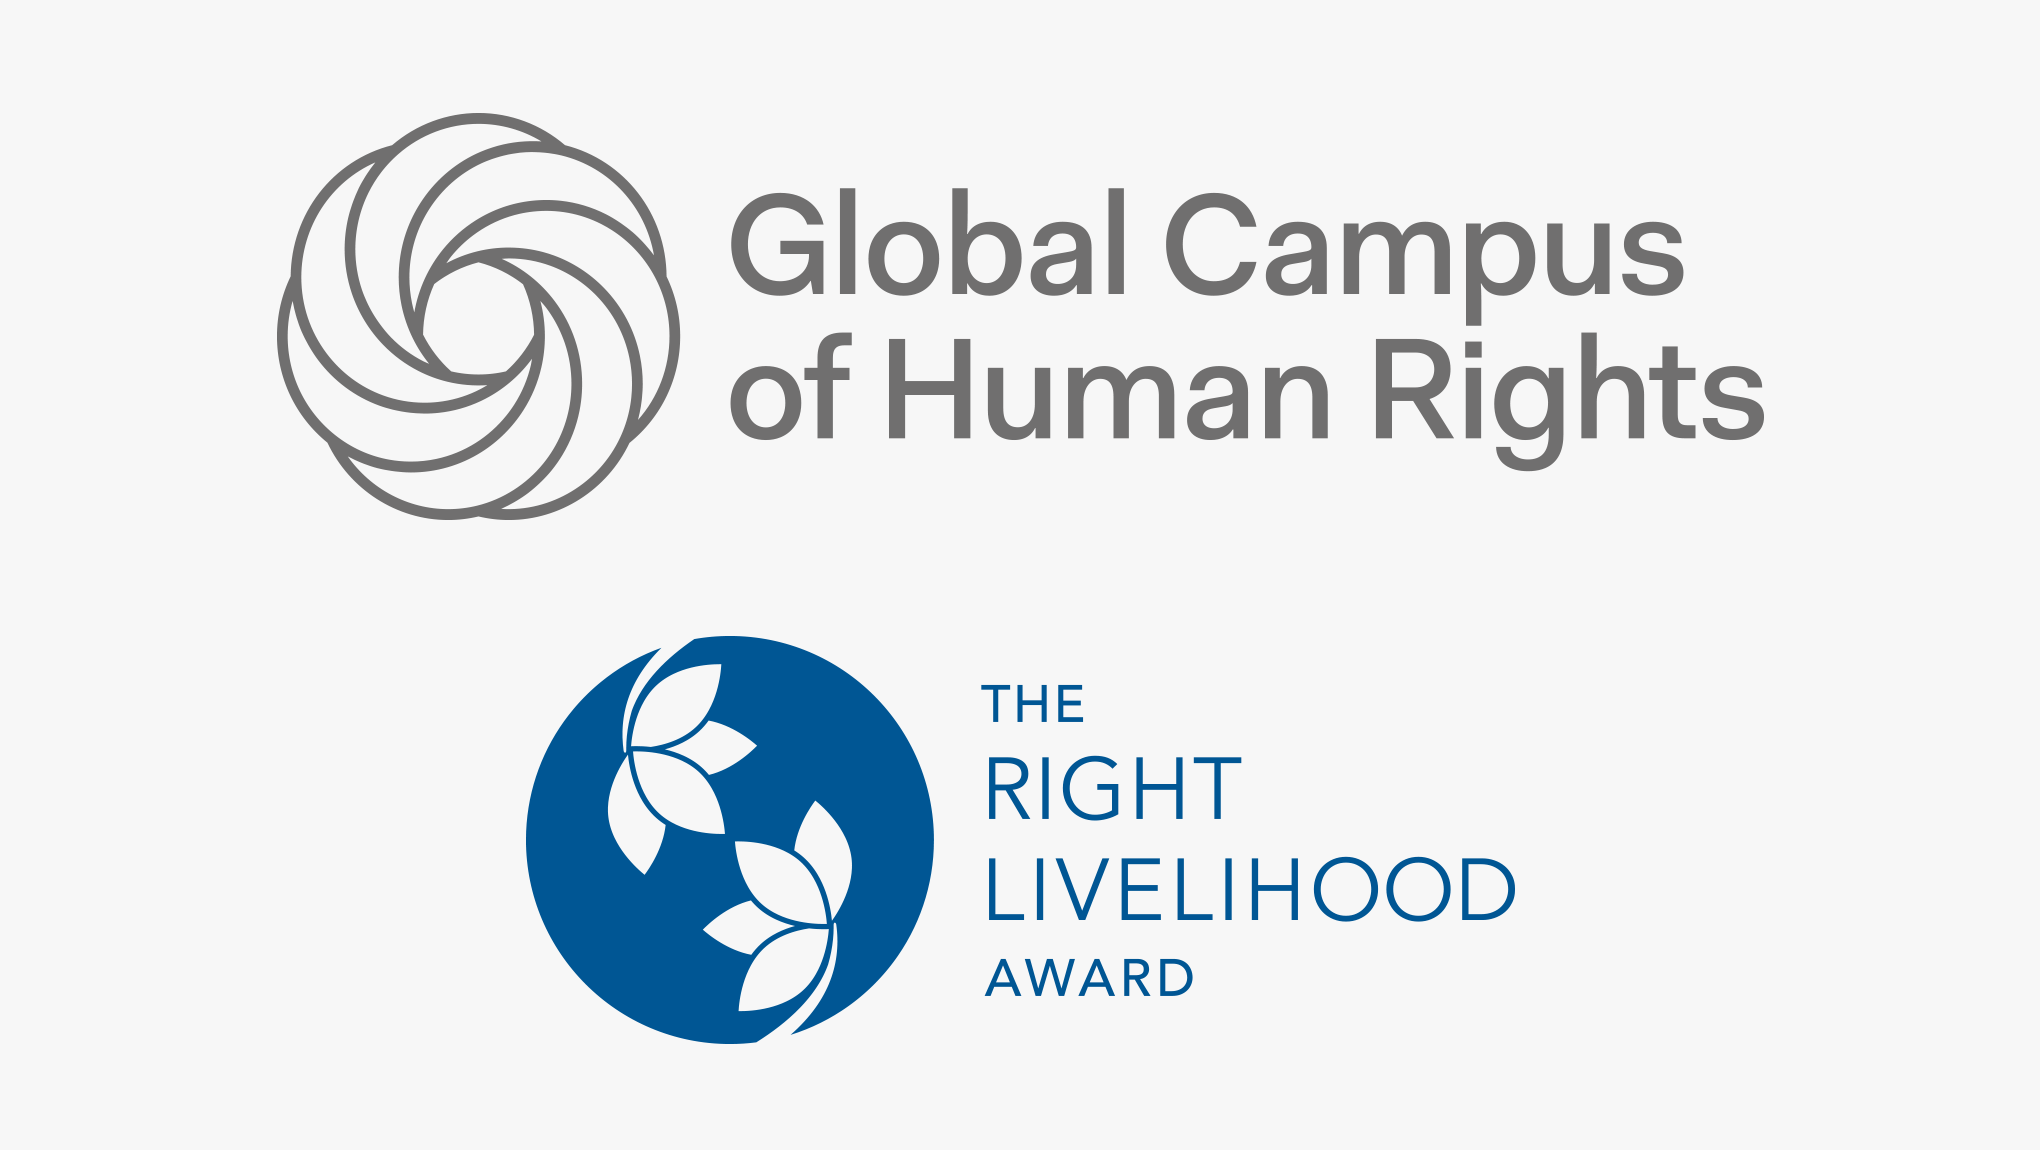 The Global Campus of Human Rights enters into new educational partnership with the Right Livelihood Foundation